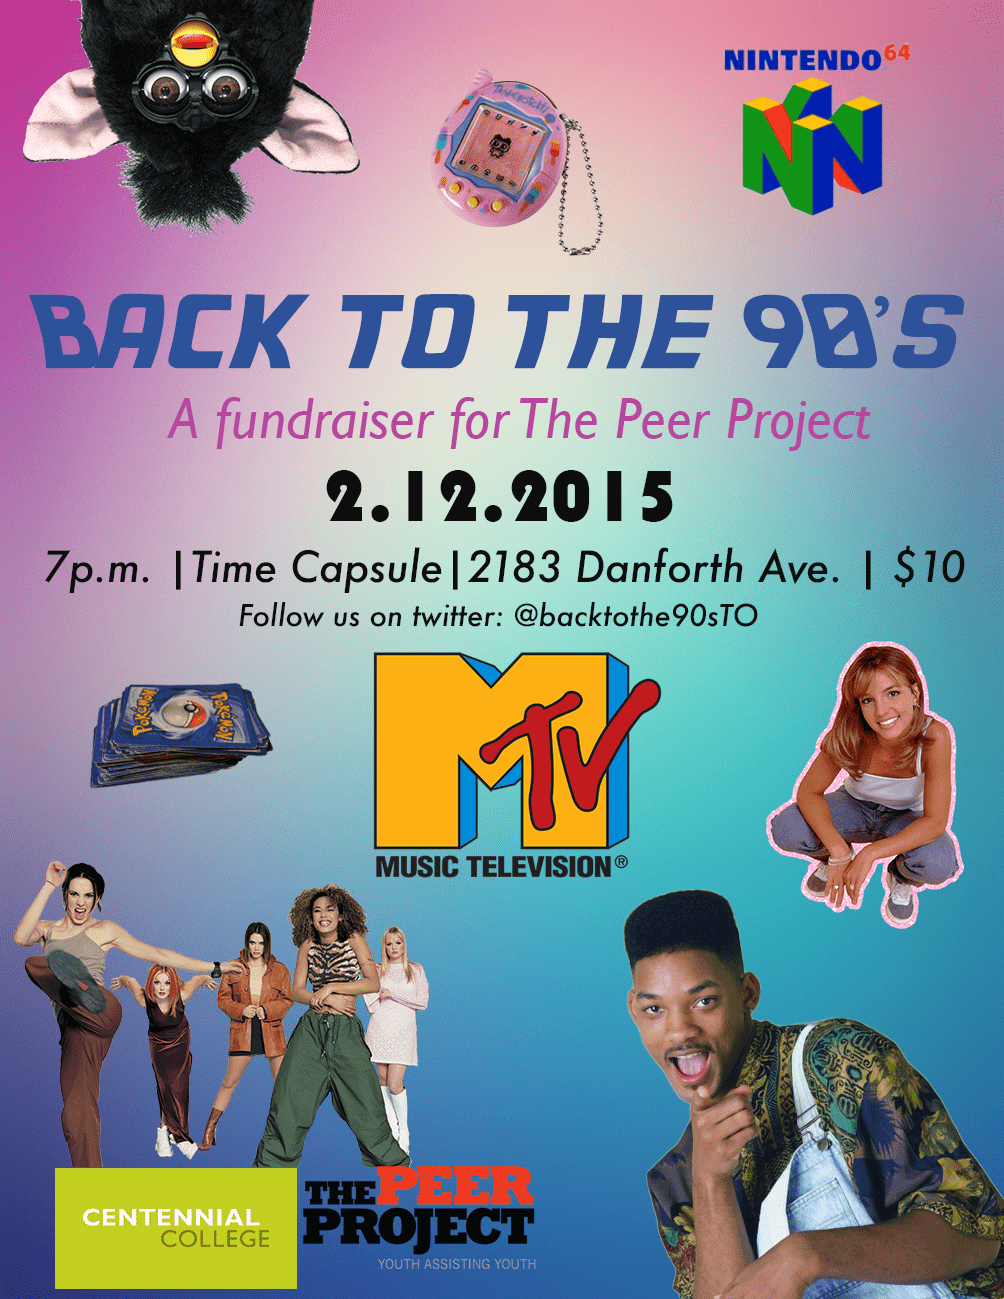 Centennial College Hosts Back to the 90s to benefit the mentoring of at-risk youth